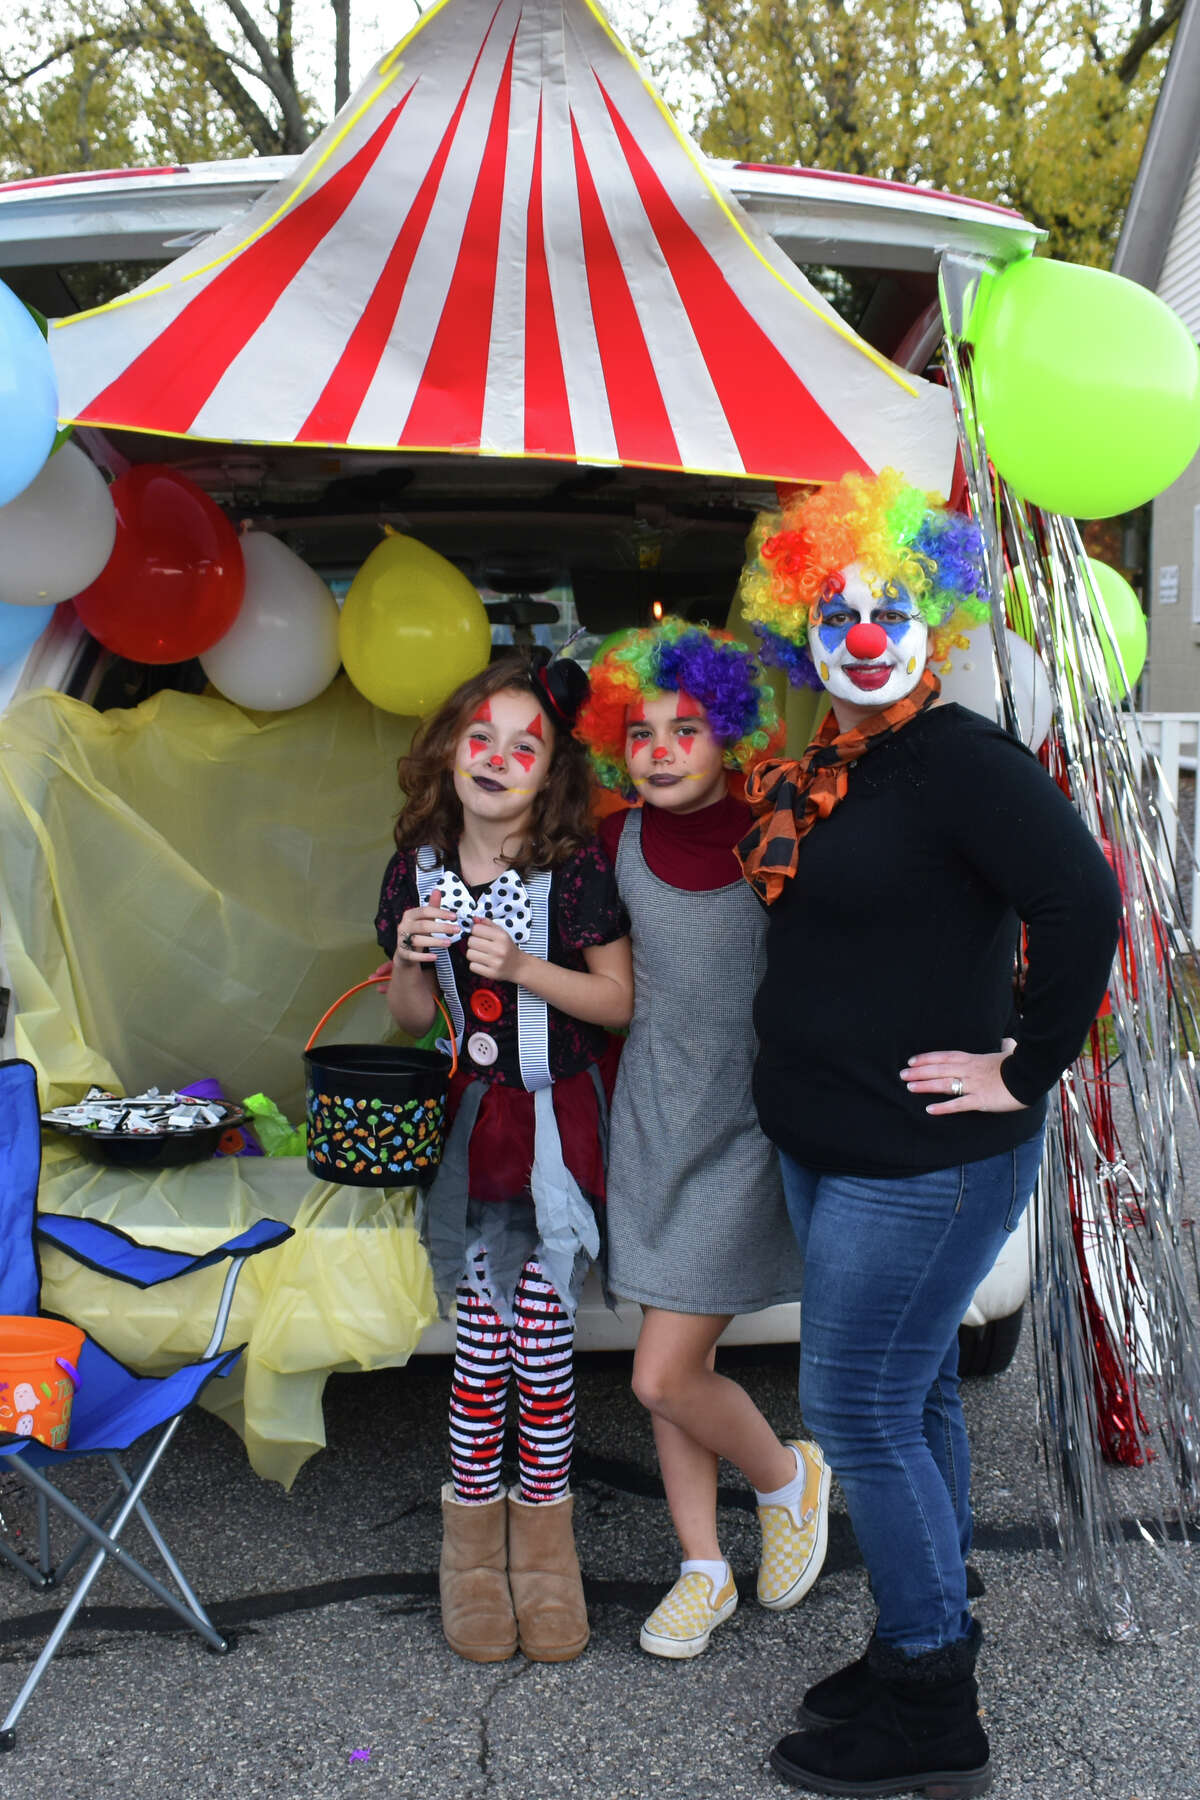 The 2019 Winsted Recreation Department held their Annual Trunk or Treat at Rowley Park on their rain date, Monday, October 28. The warm evening and creative trunks brought hoards of happy trick or treaters.